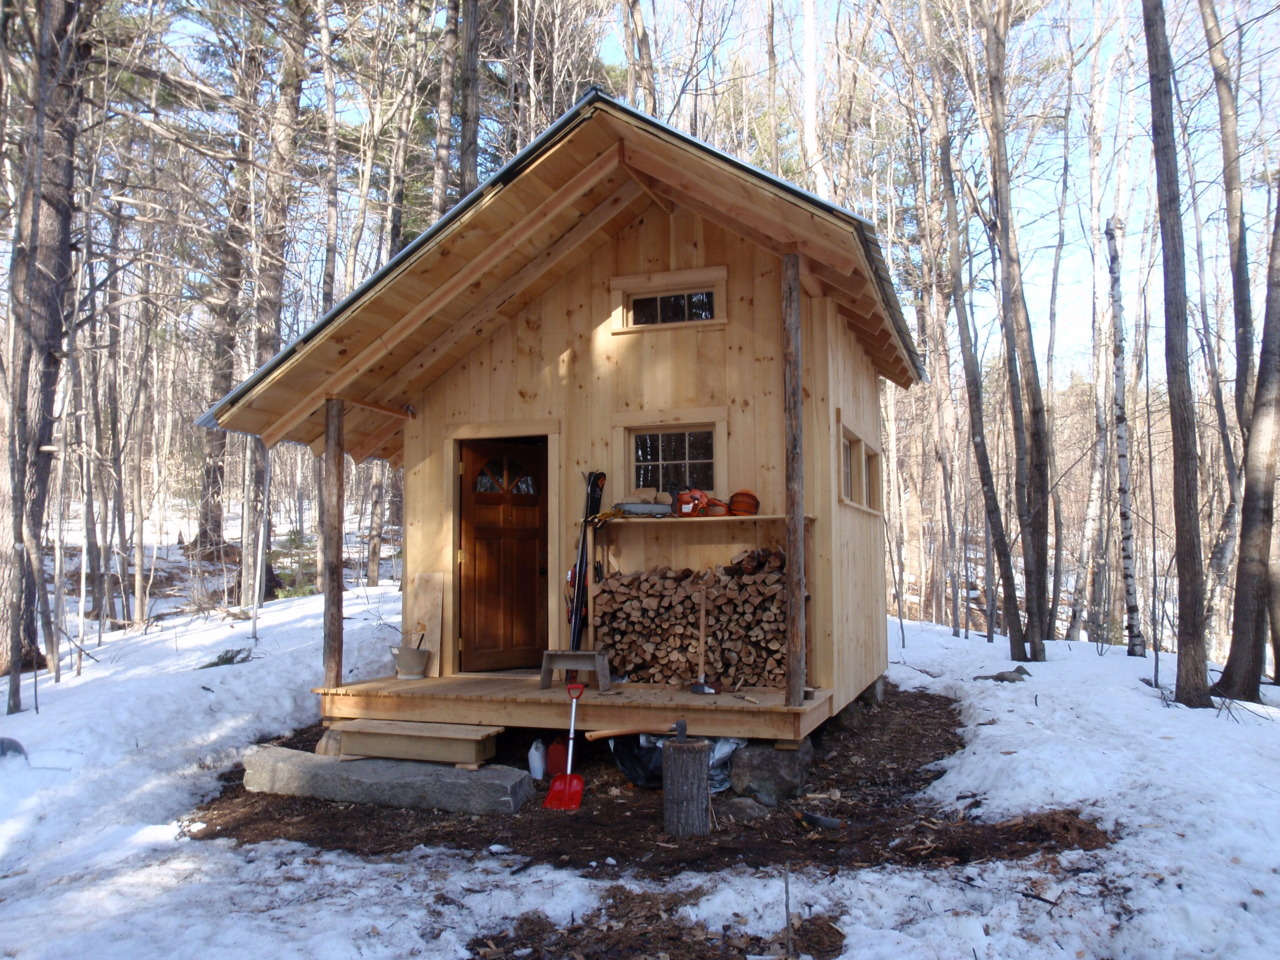 Cabin fever 50 quiet and peaceful cabin designs for Building a small cabin in the woods